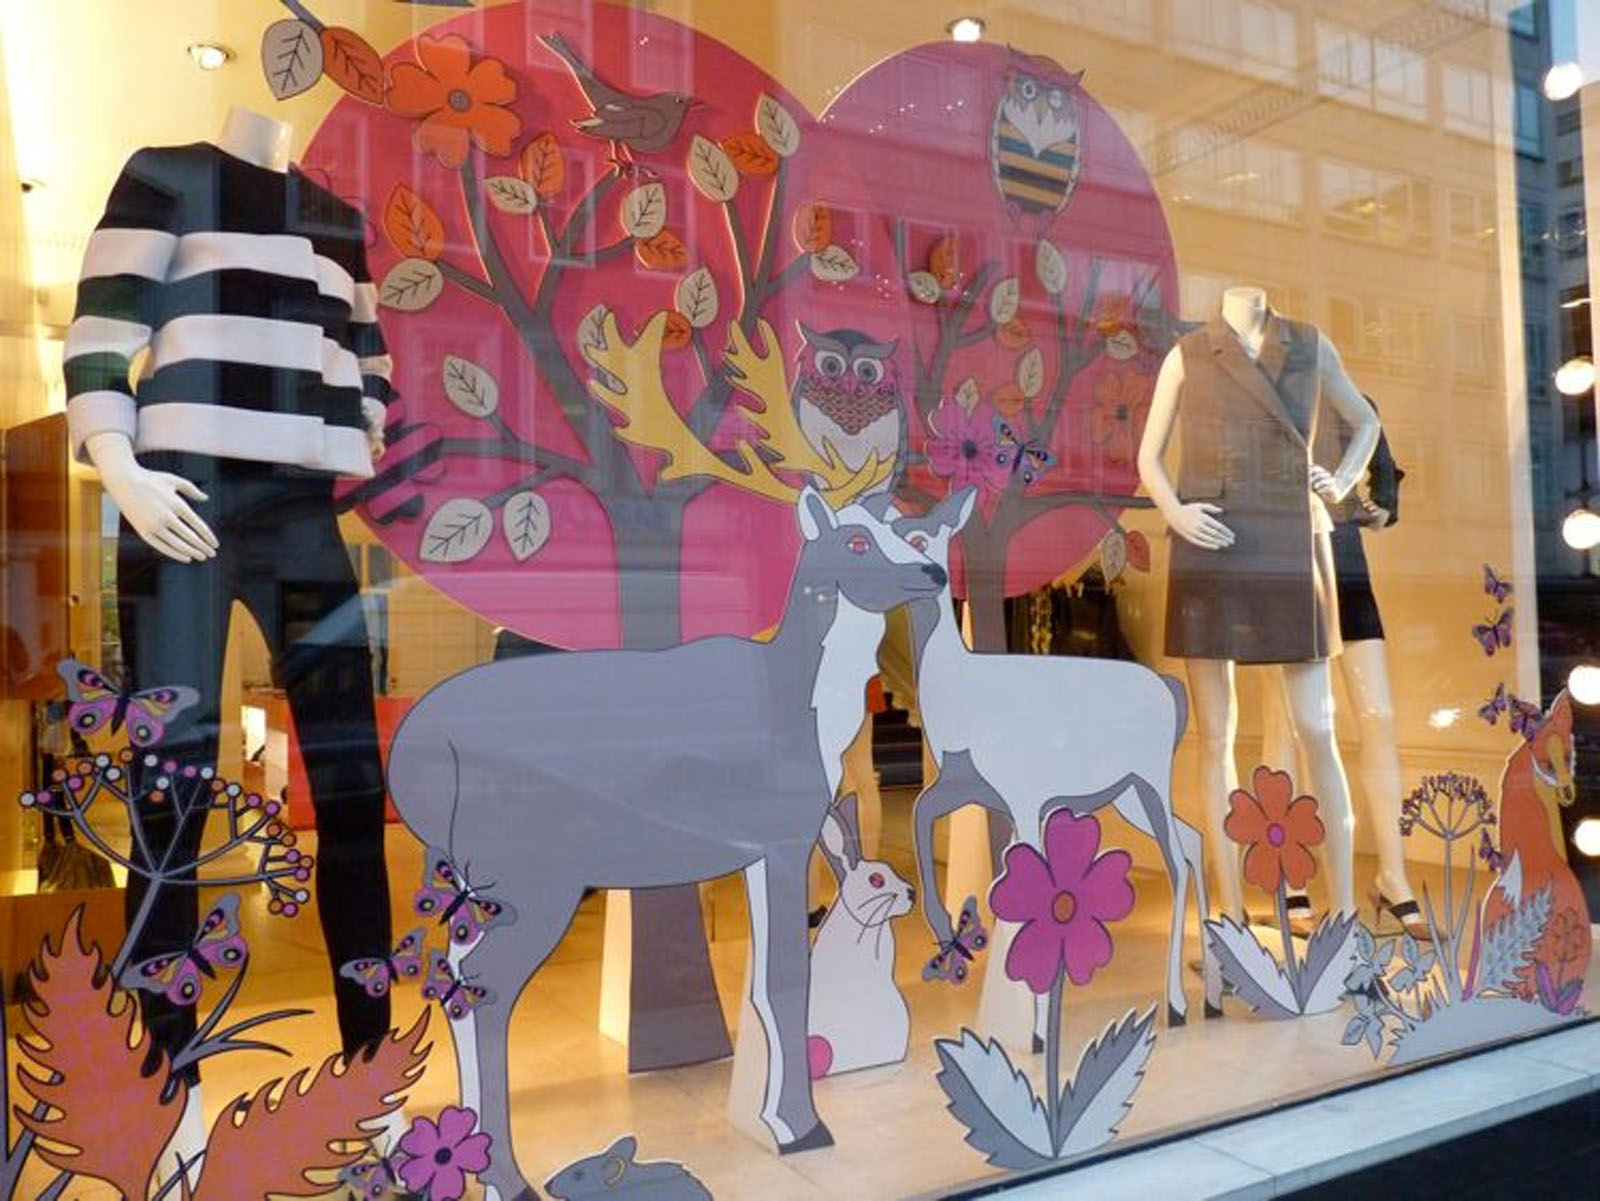 Stella McCartney store has some cute stickers with various animals for the autumn window display.